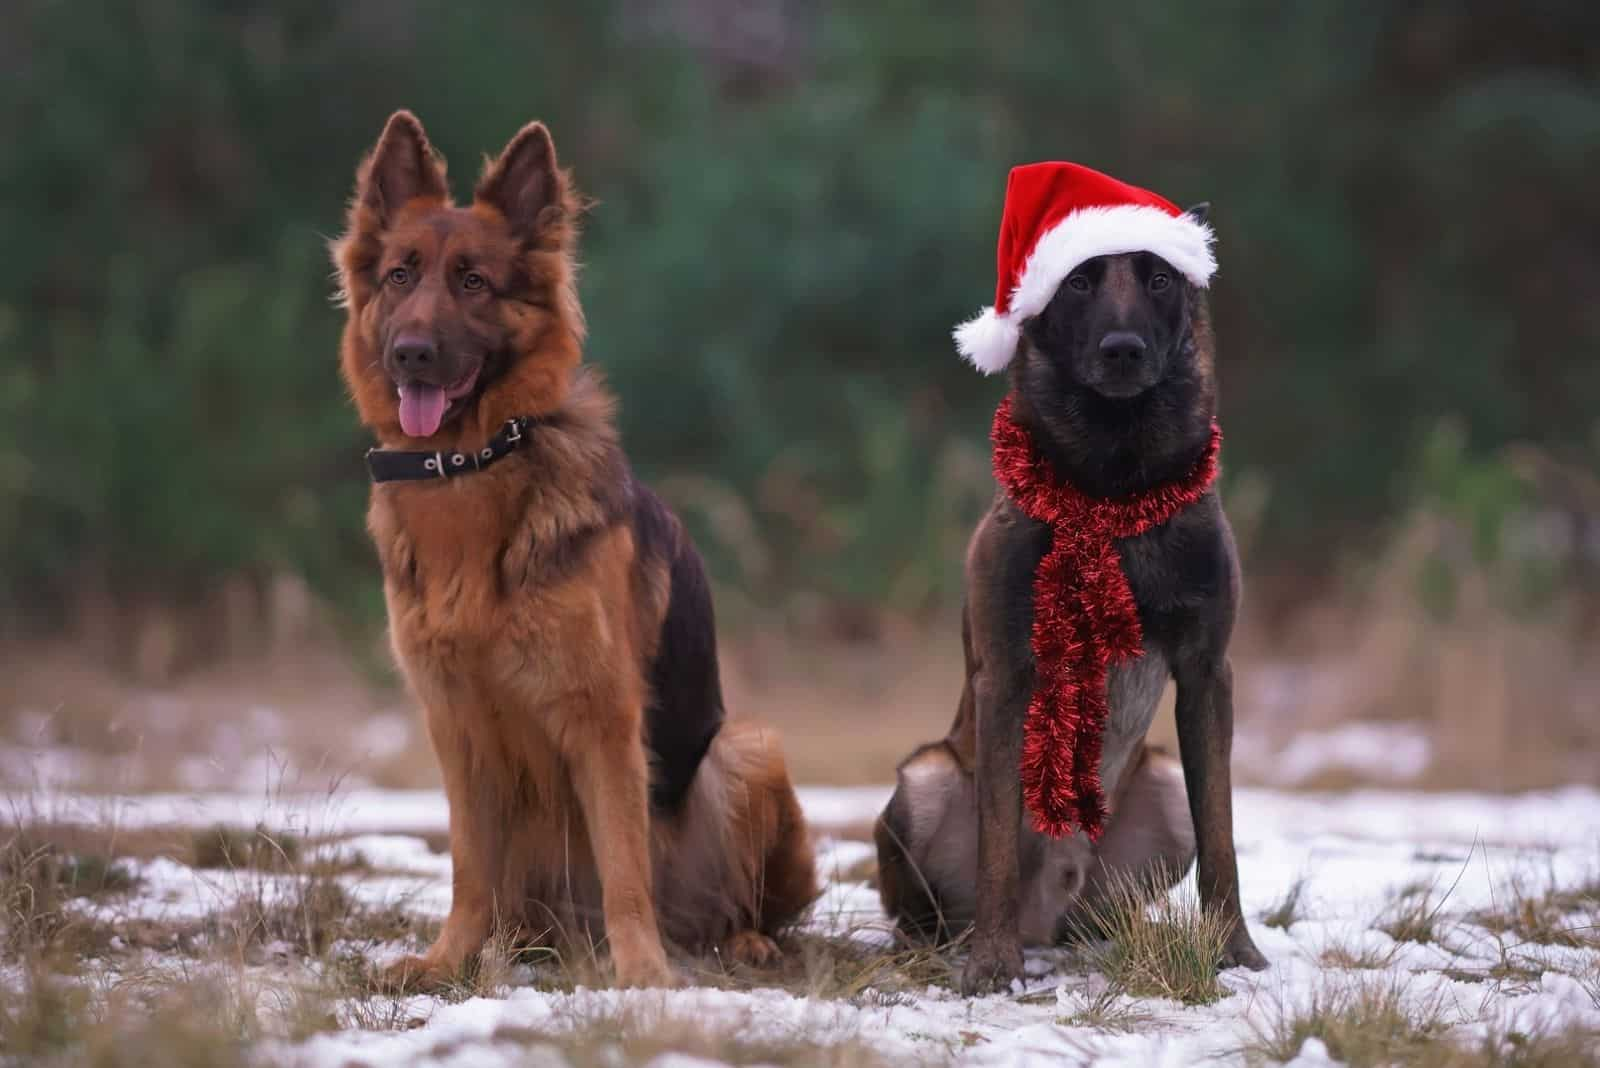 Two Sheepdogs sitting (liver long-haired German Shepherd and Belgian Malinois) on a snow in a forest